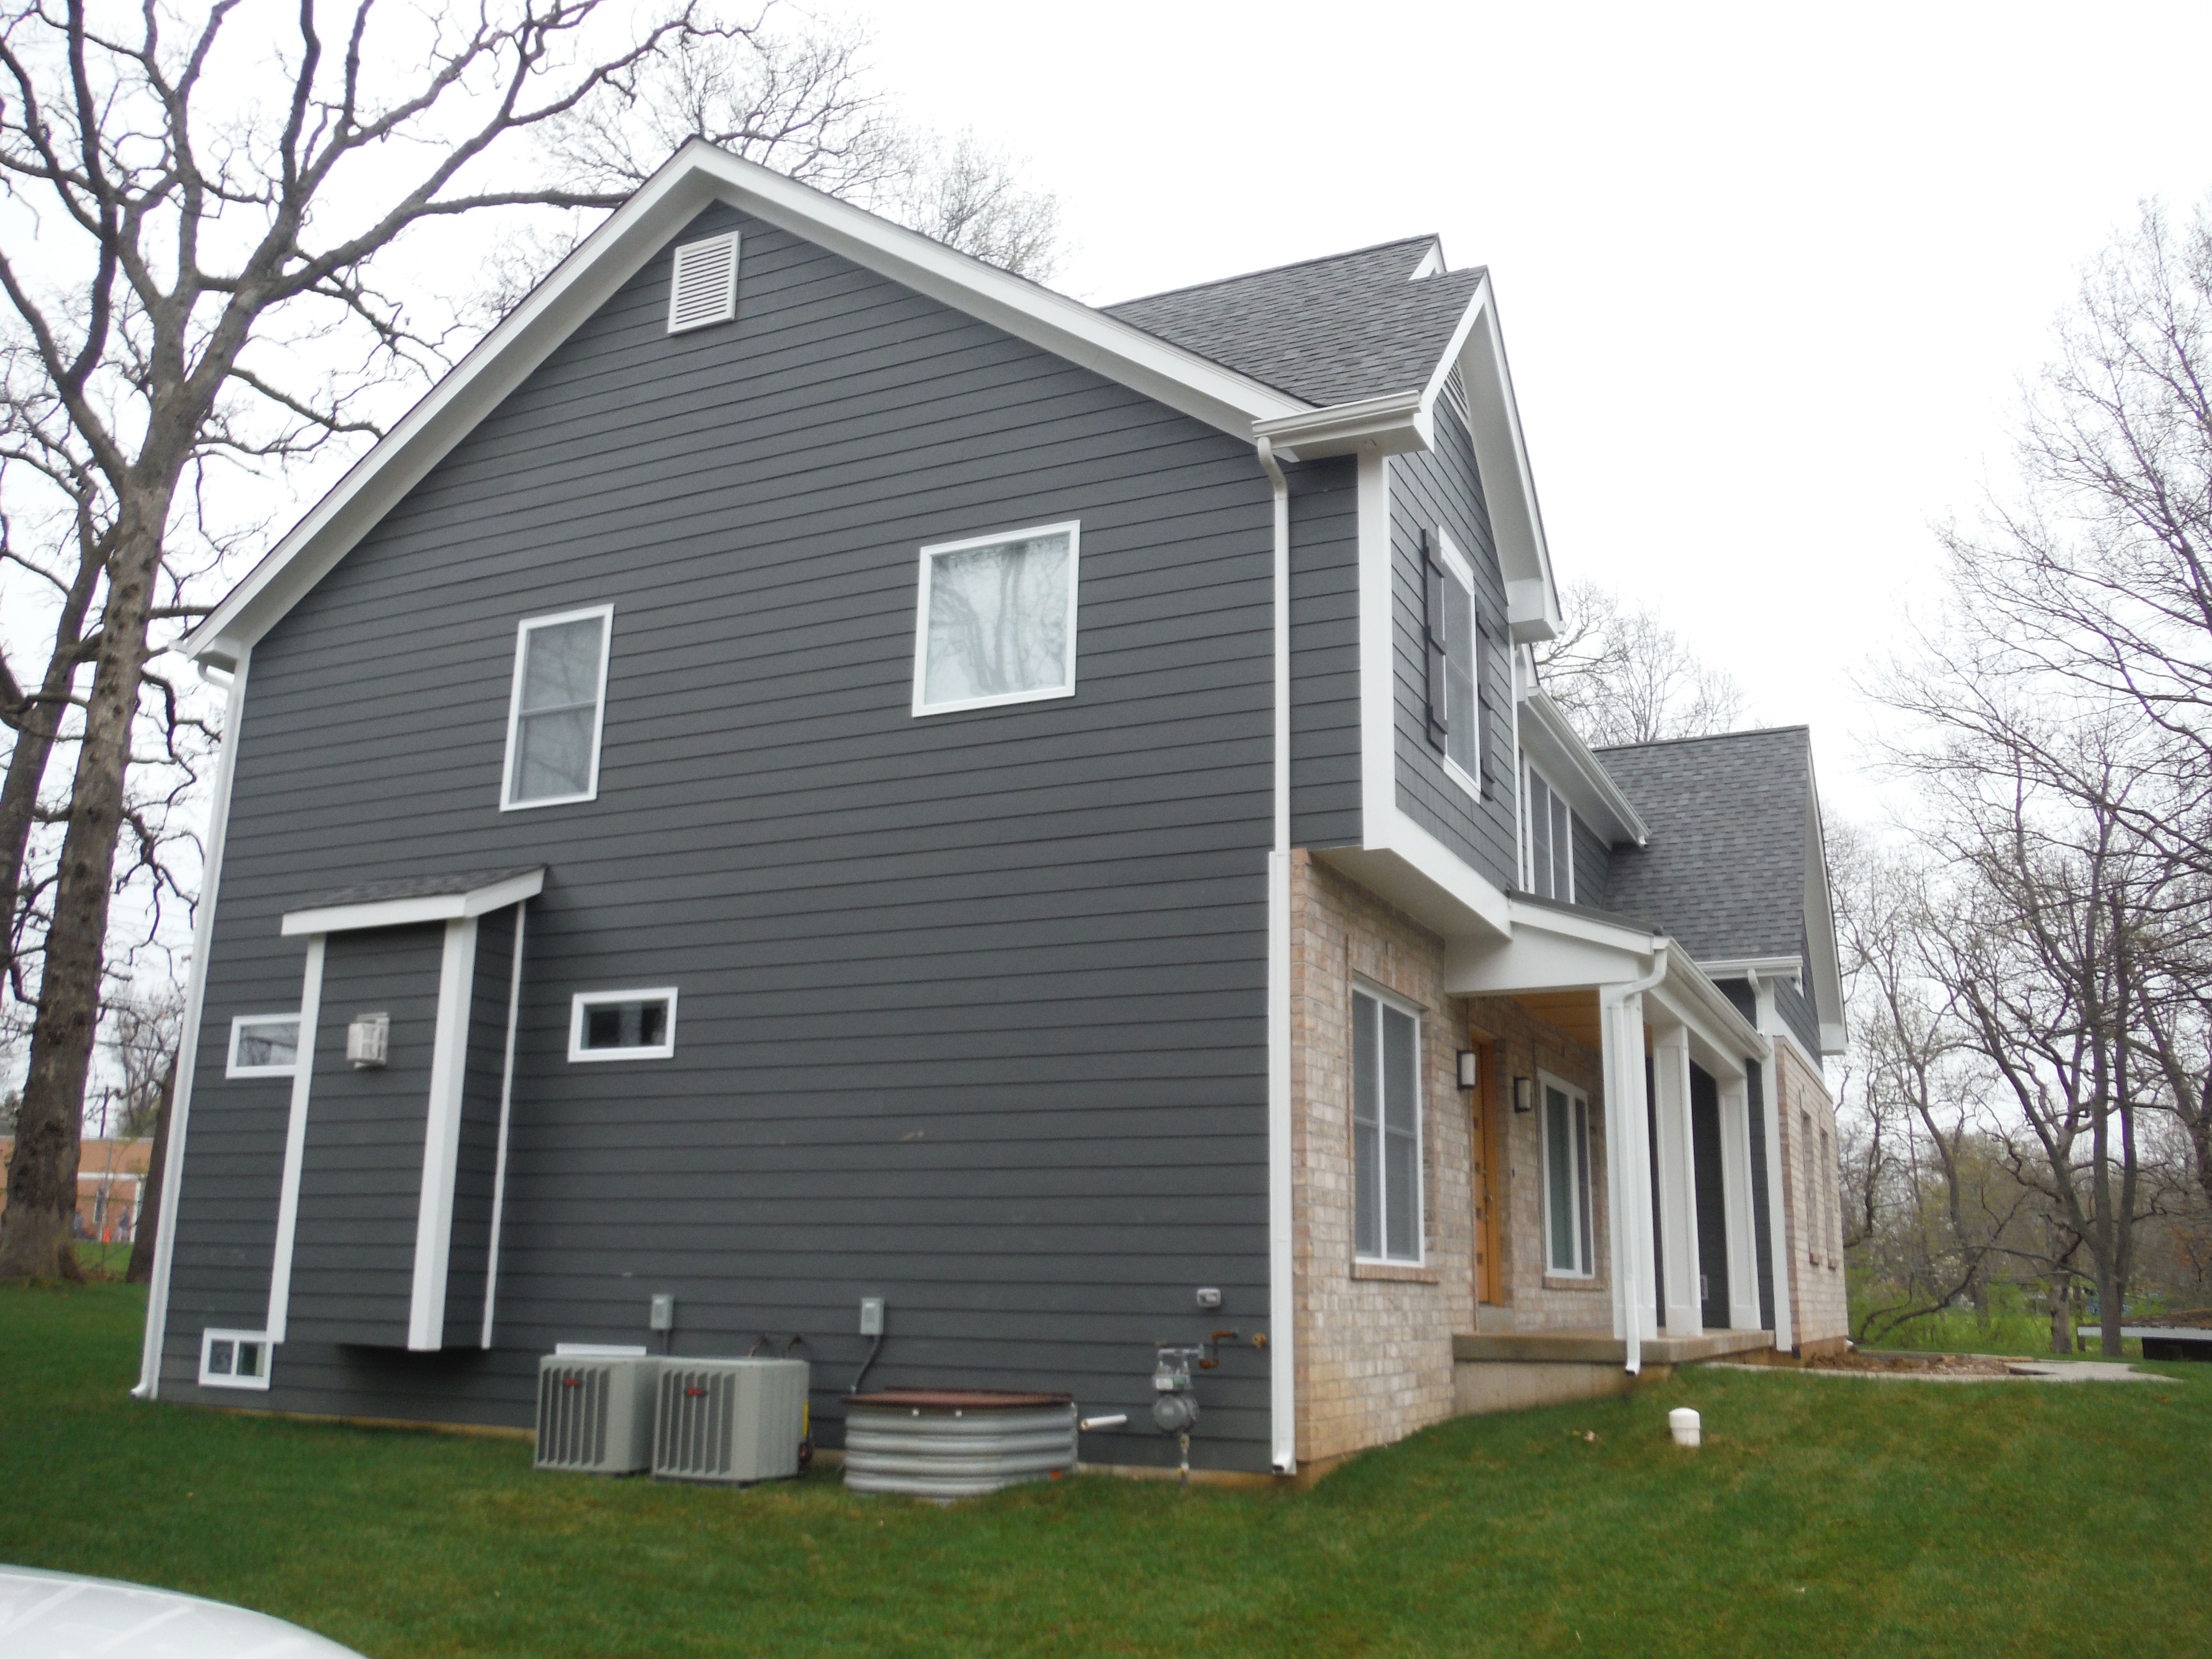 West Side Of The House In Hardieplank Iron Gray 7 1 4